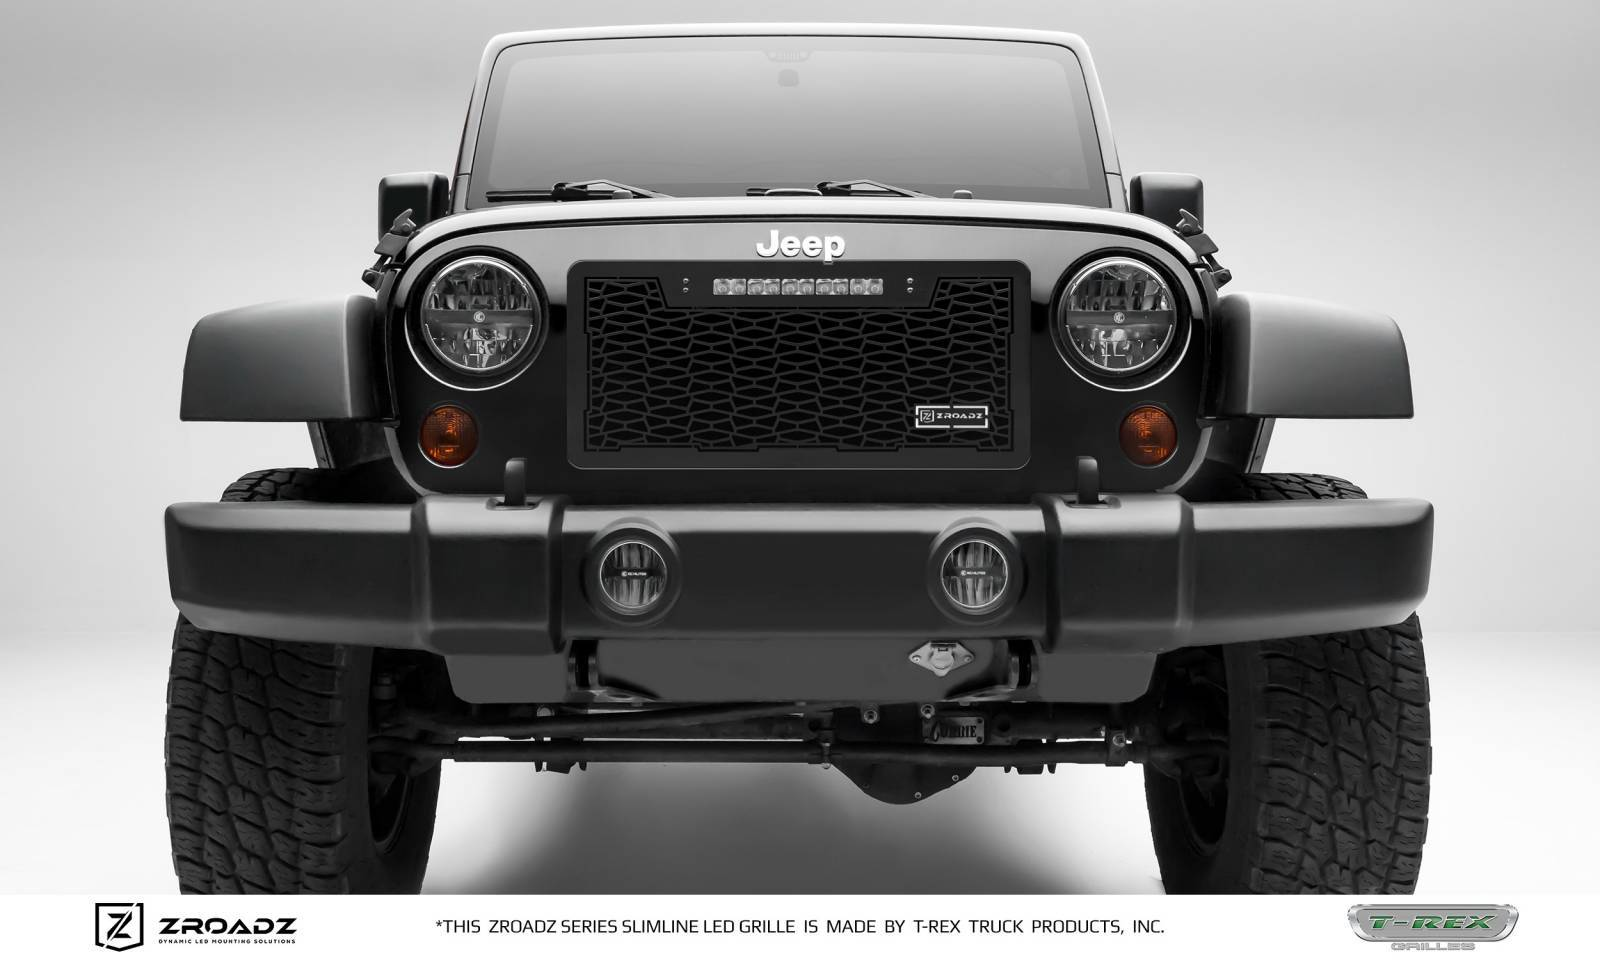 Jeep Wrangler - ZROADZ Series - Main Insert - Grille w/ One 10 Inch Slim Line Single Row LED Light Bar - Includes Universal Wiring Harness - Part# Z314831-10T